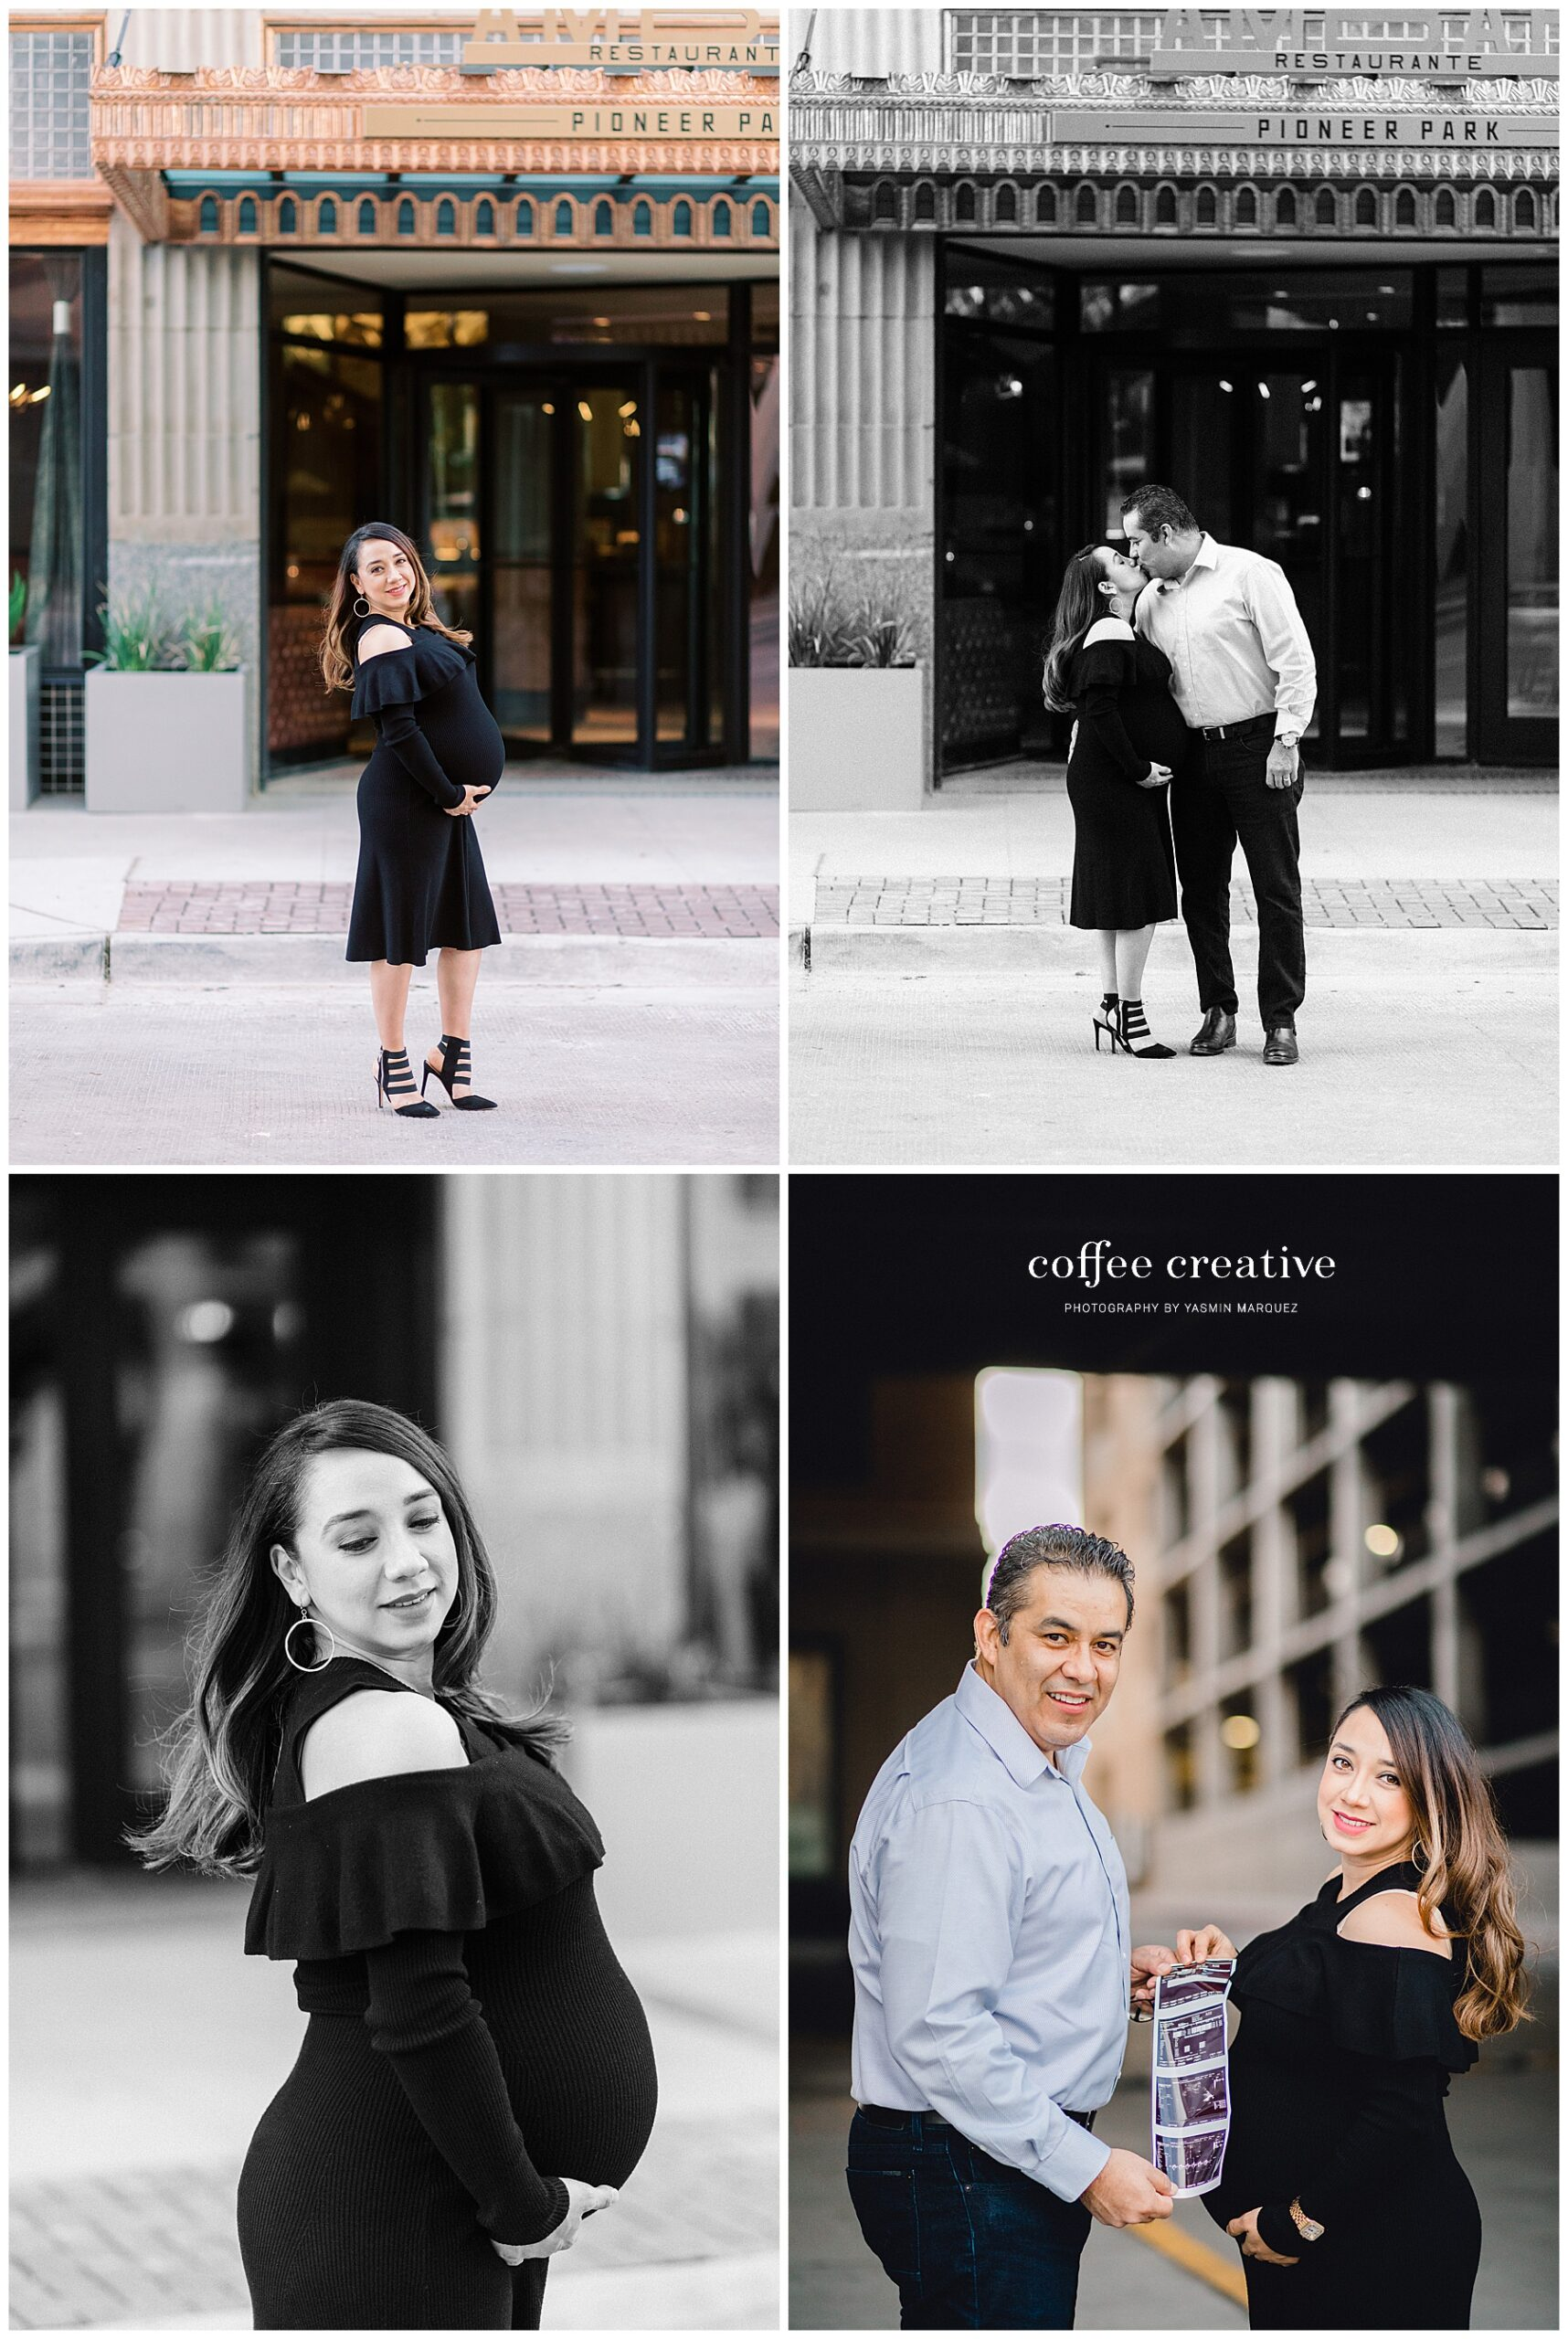 downtown el paso maternity, EL PASO TEXAS MATERNITY PHOTOGRAPHER, DOWNTOWN EL PASO MATERNITY SESSION, downtown maternity session